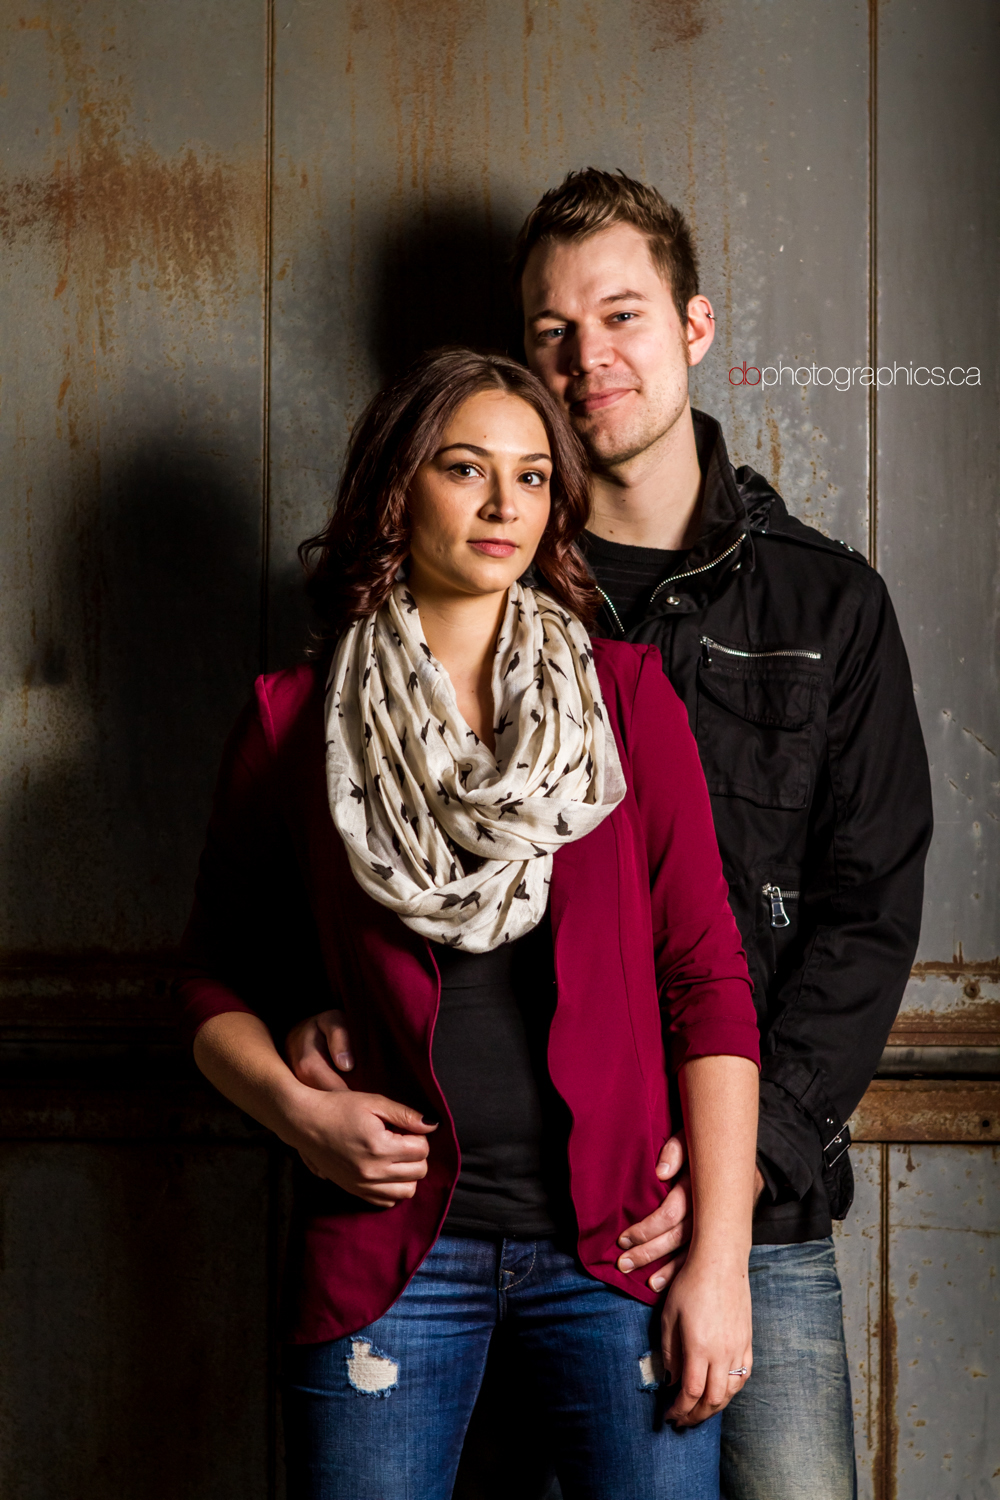 Gaea & Kurt - Engagement Session - 20131020 - 0083.jpg